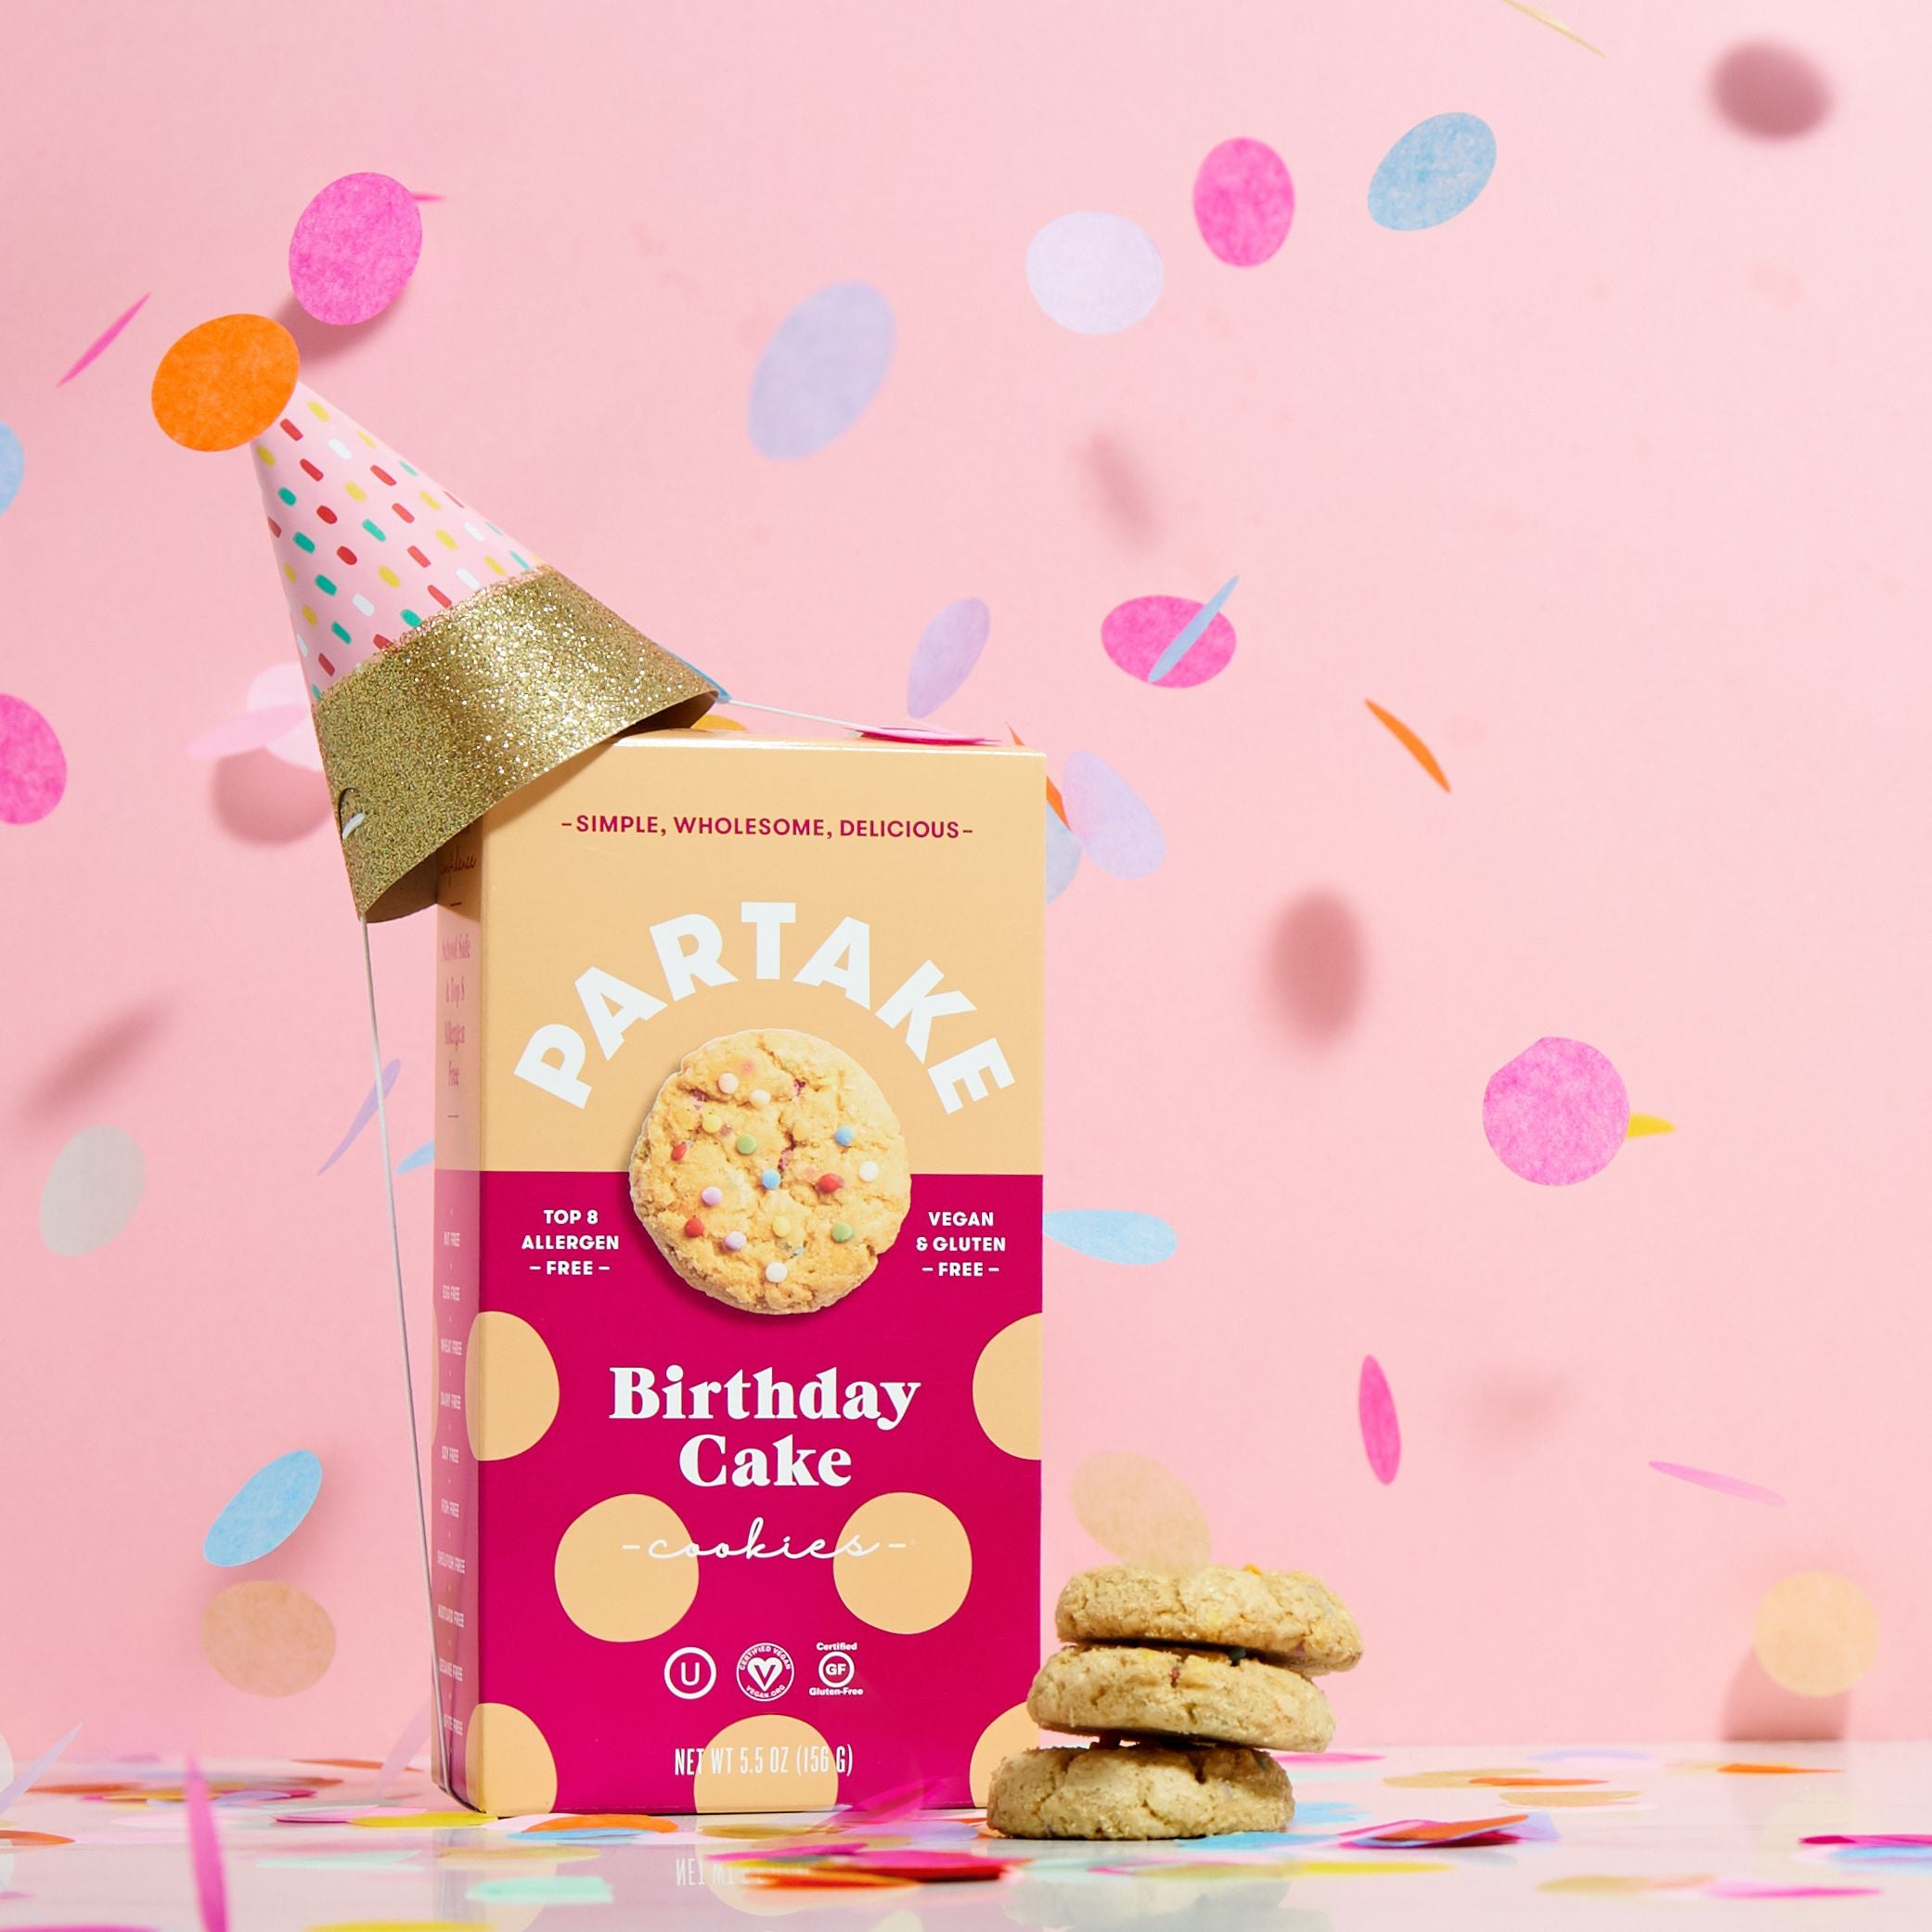 A box of Birthday Cake cookies topped with a party hat with confetti in the photo along with three cookies outside of the box.